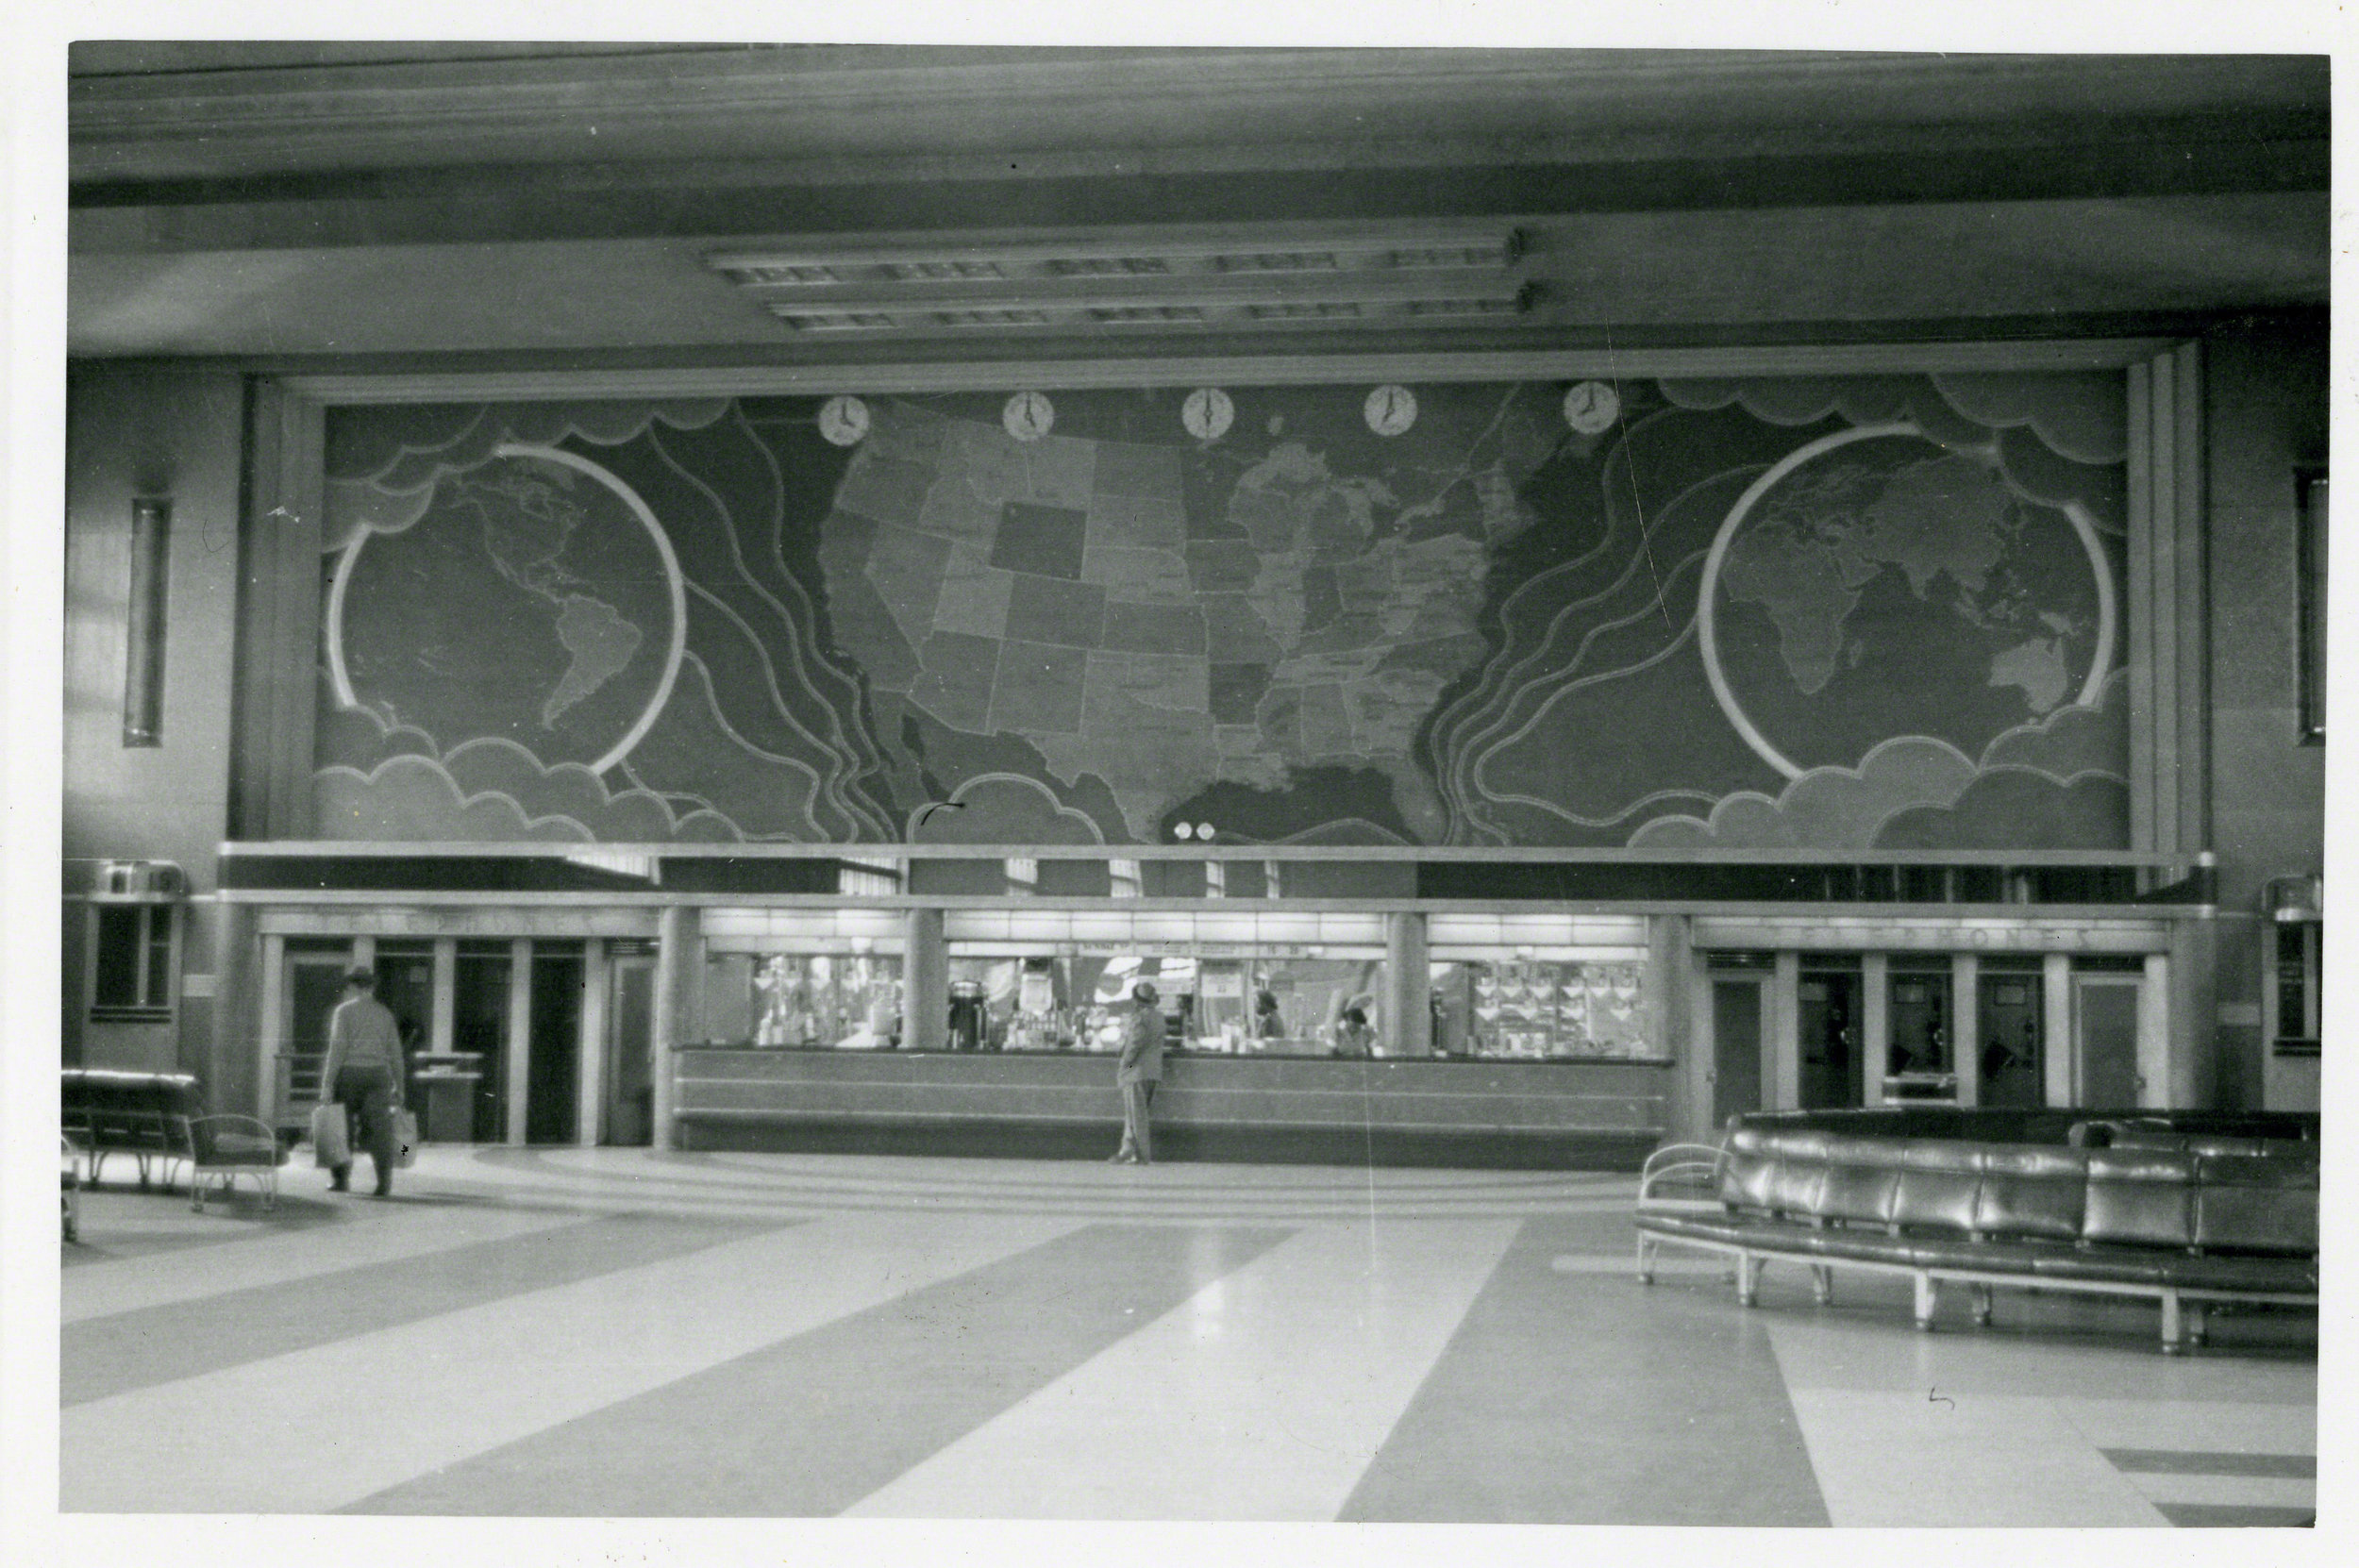 West Wall - US Mural & Luncheonette Counter.jpg